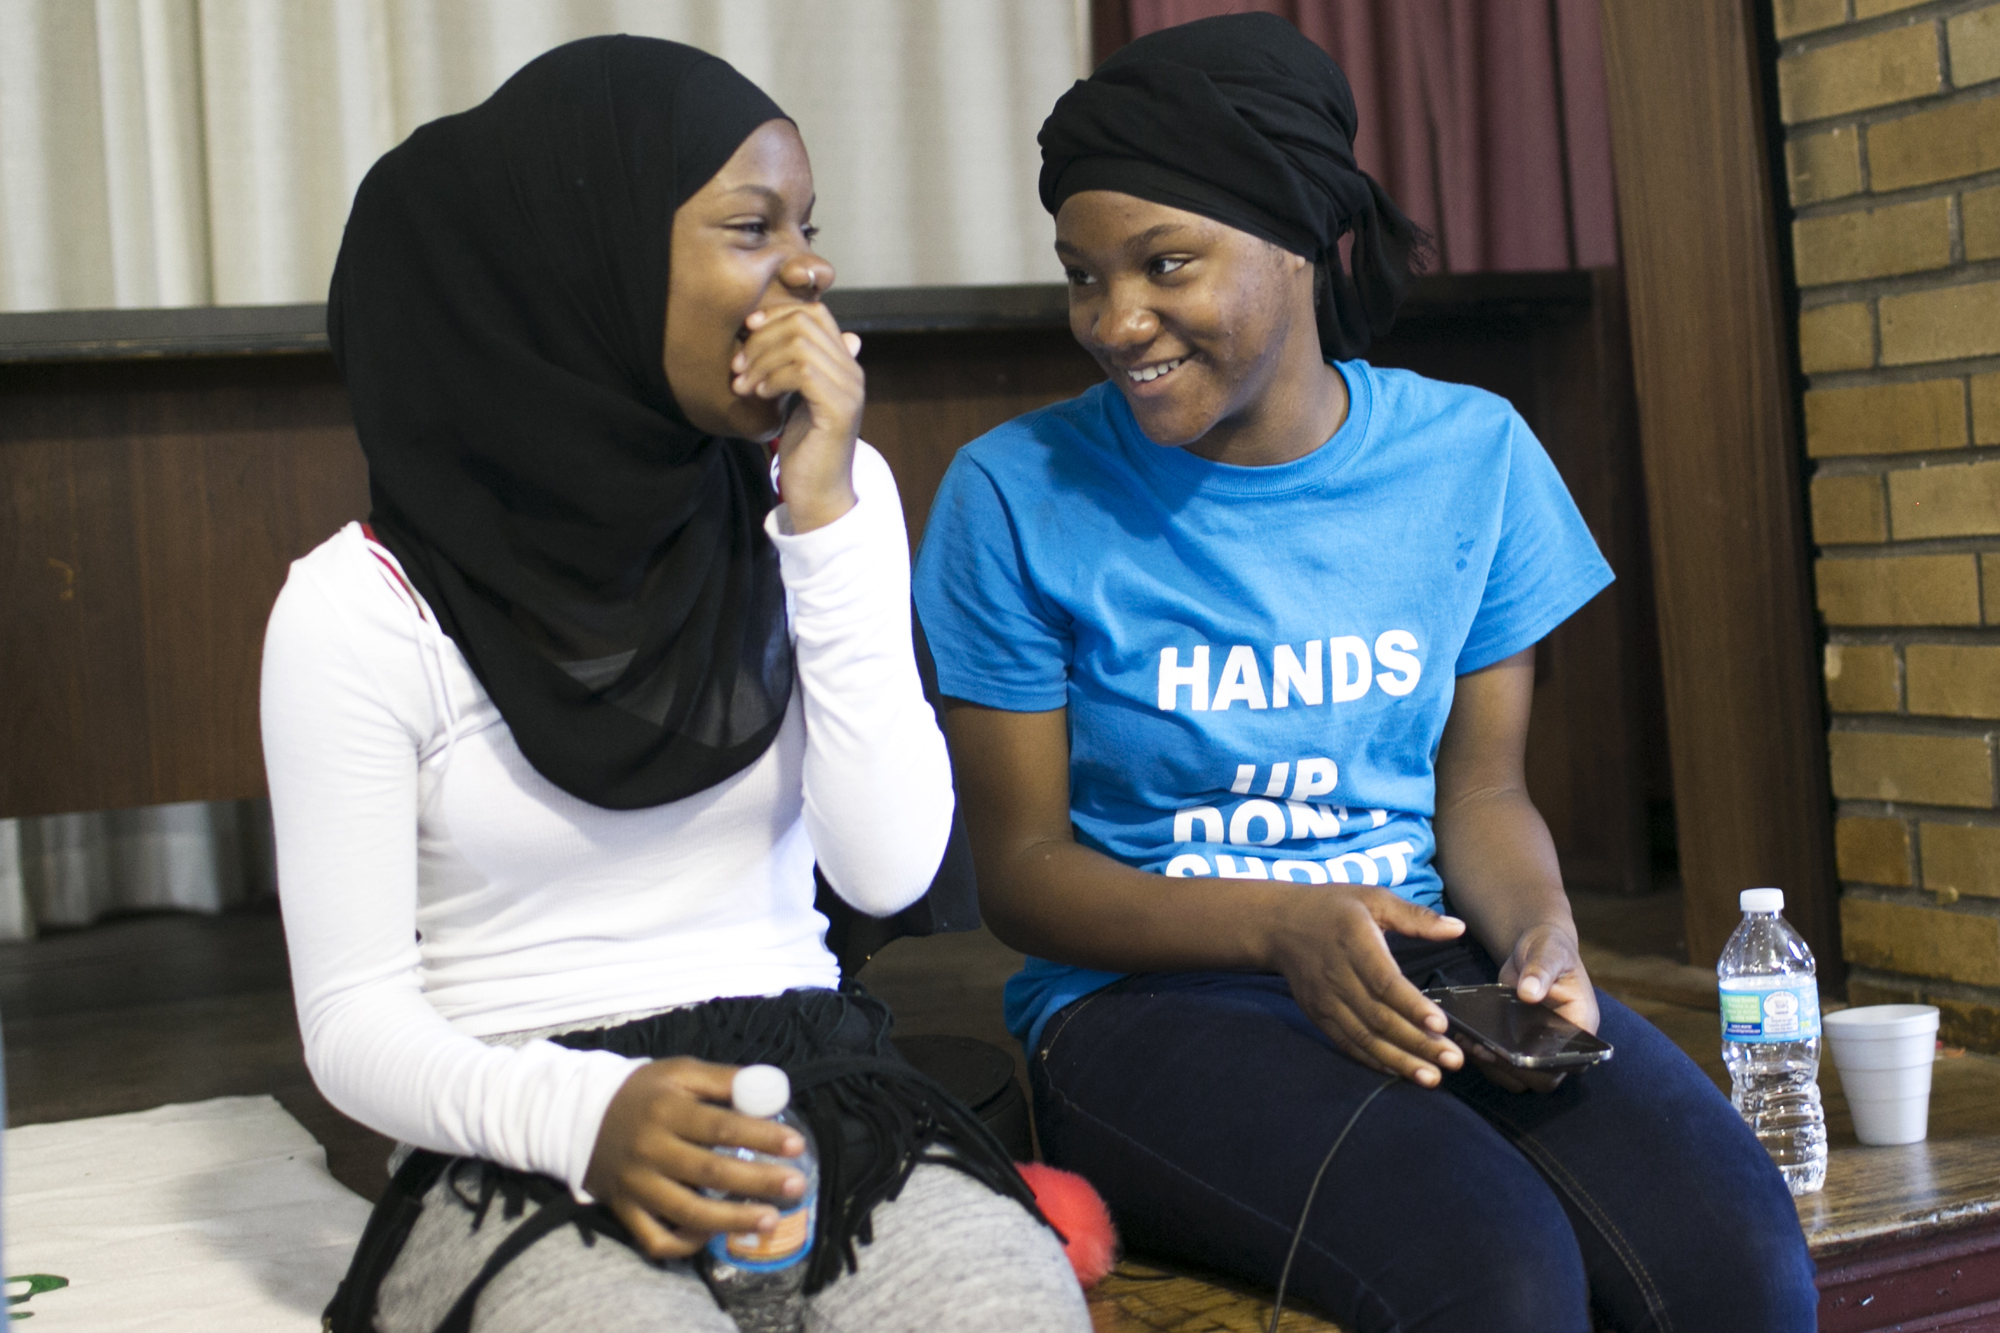 Attalah Abdulhaqq, Tacharah Abdulhaqq, Taharah Abdulhaqq, and Faith Green hang out after a peace camp at a Masonic Hall in Cleveland, OH on Tuesday, July 19, 2016.